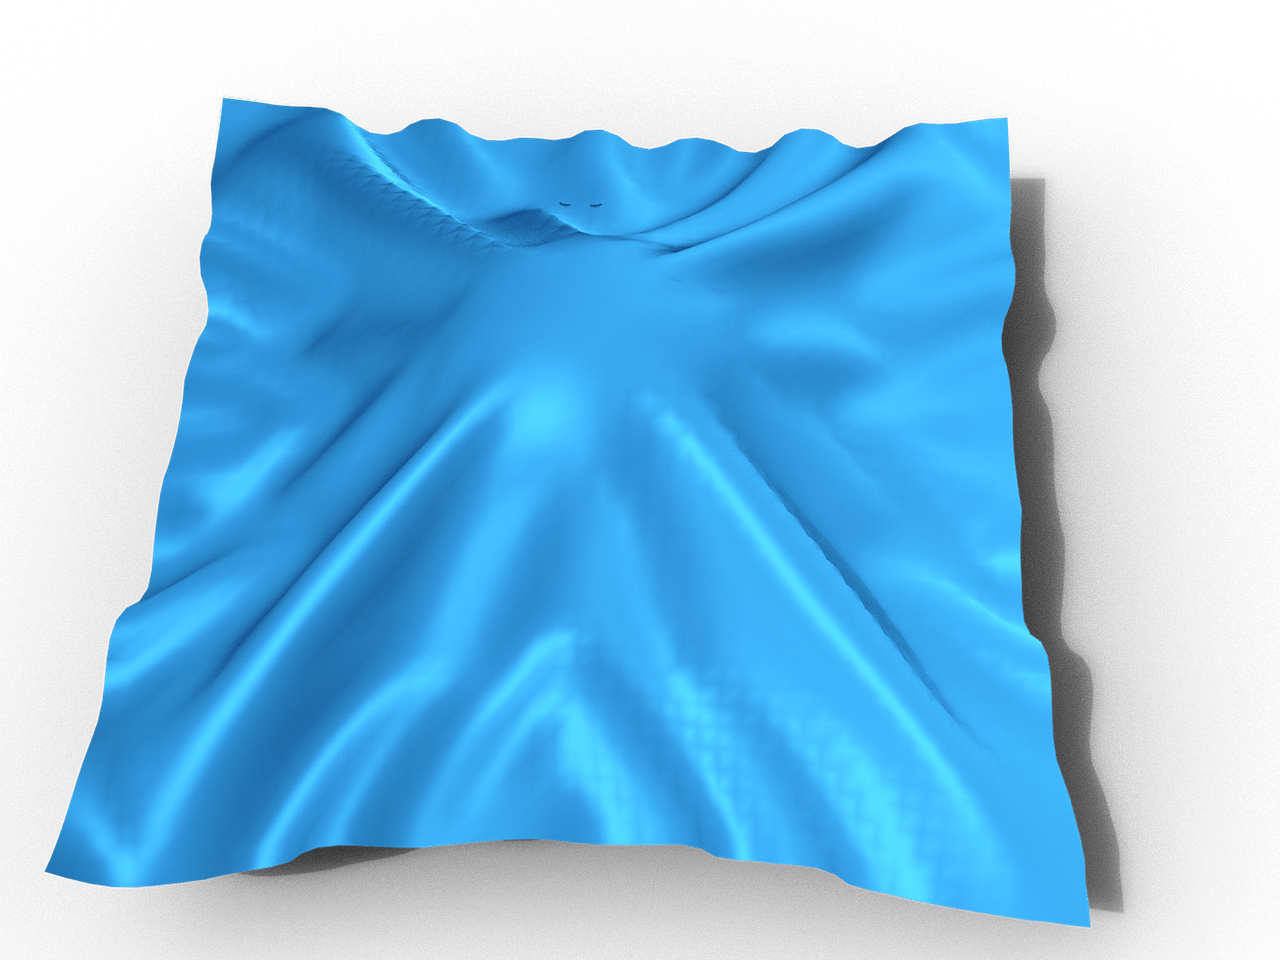 Simulated cloth with dforce in daz studio